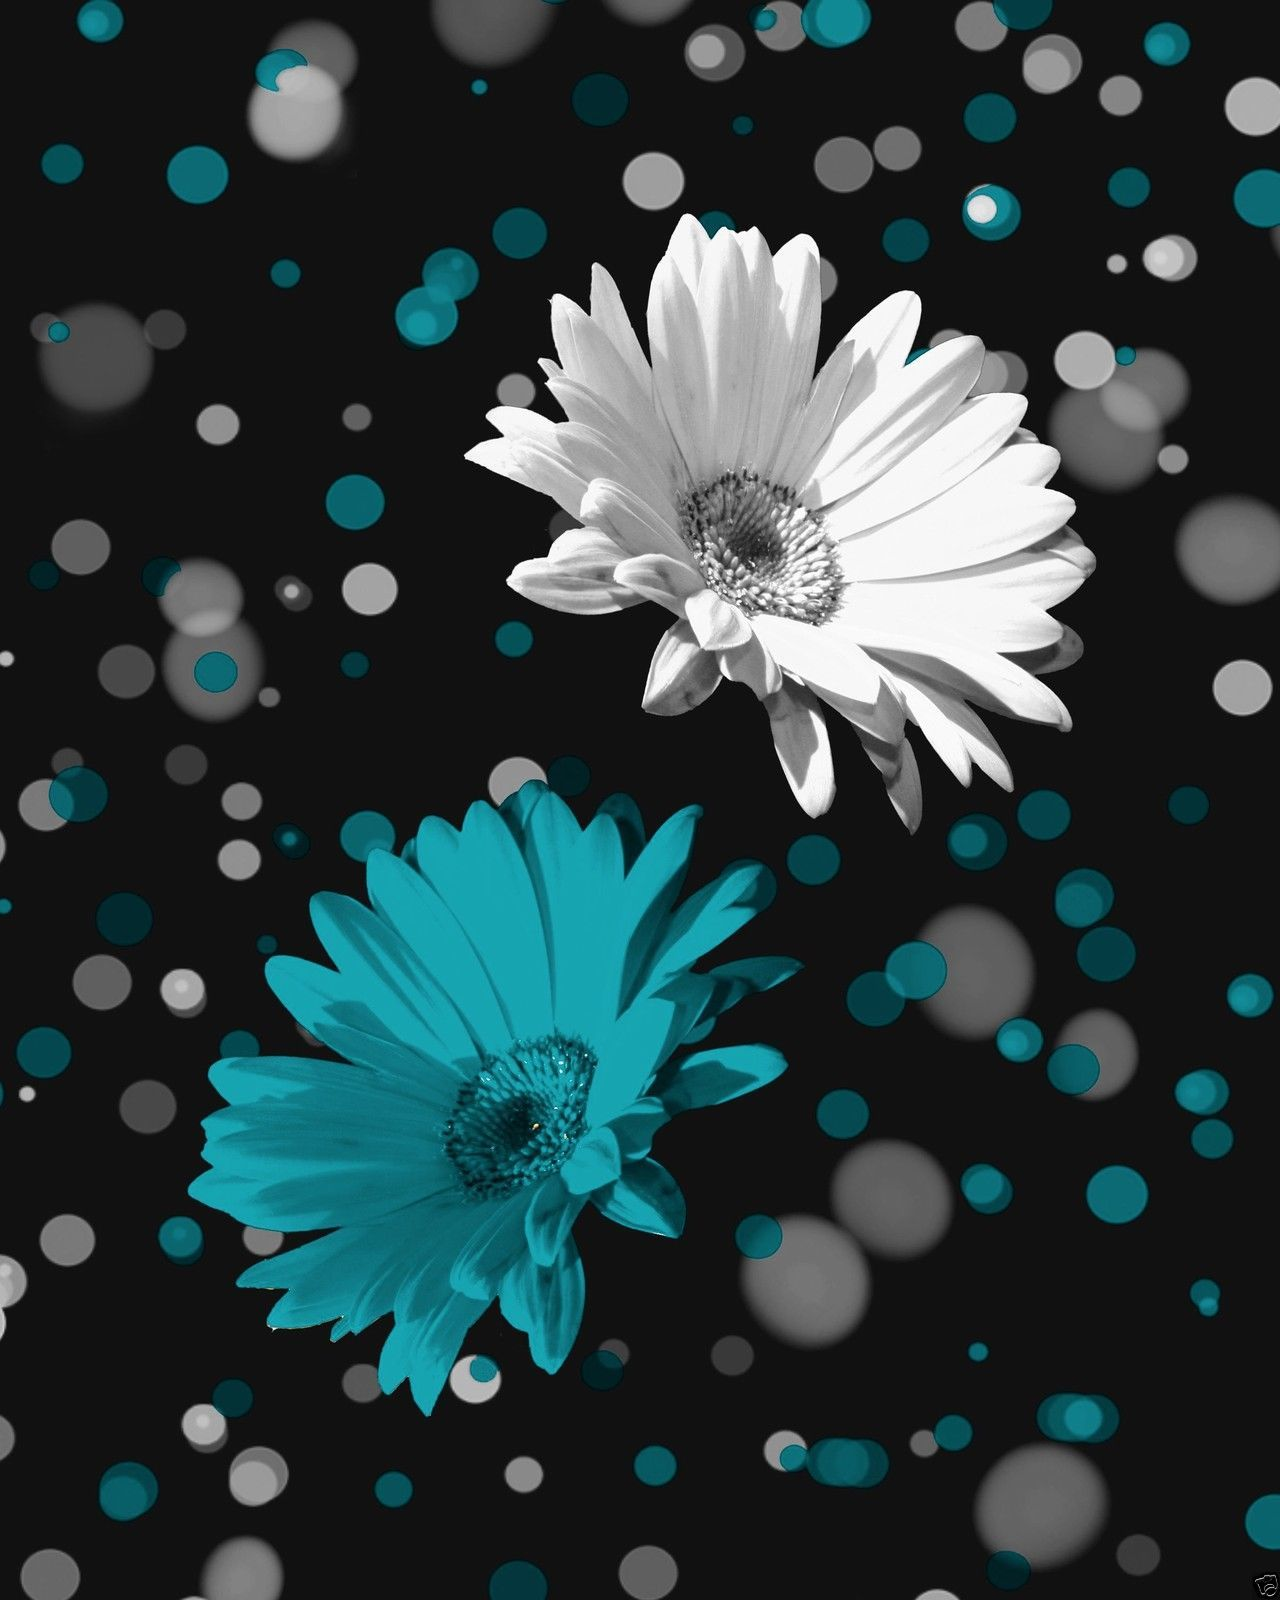 Teal Flower Wall Decor : Black white teal daisy flowers wall art home decor matted